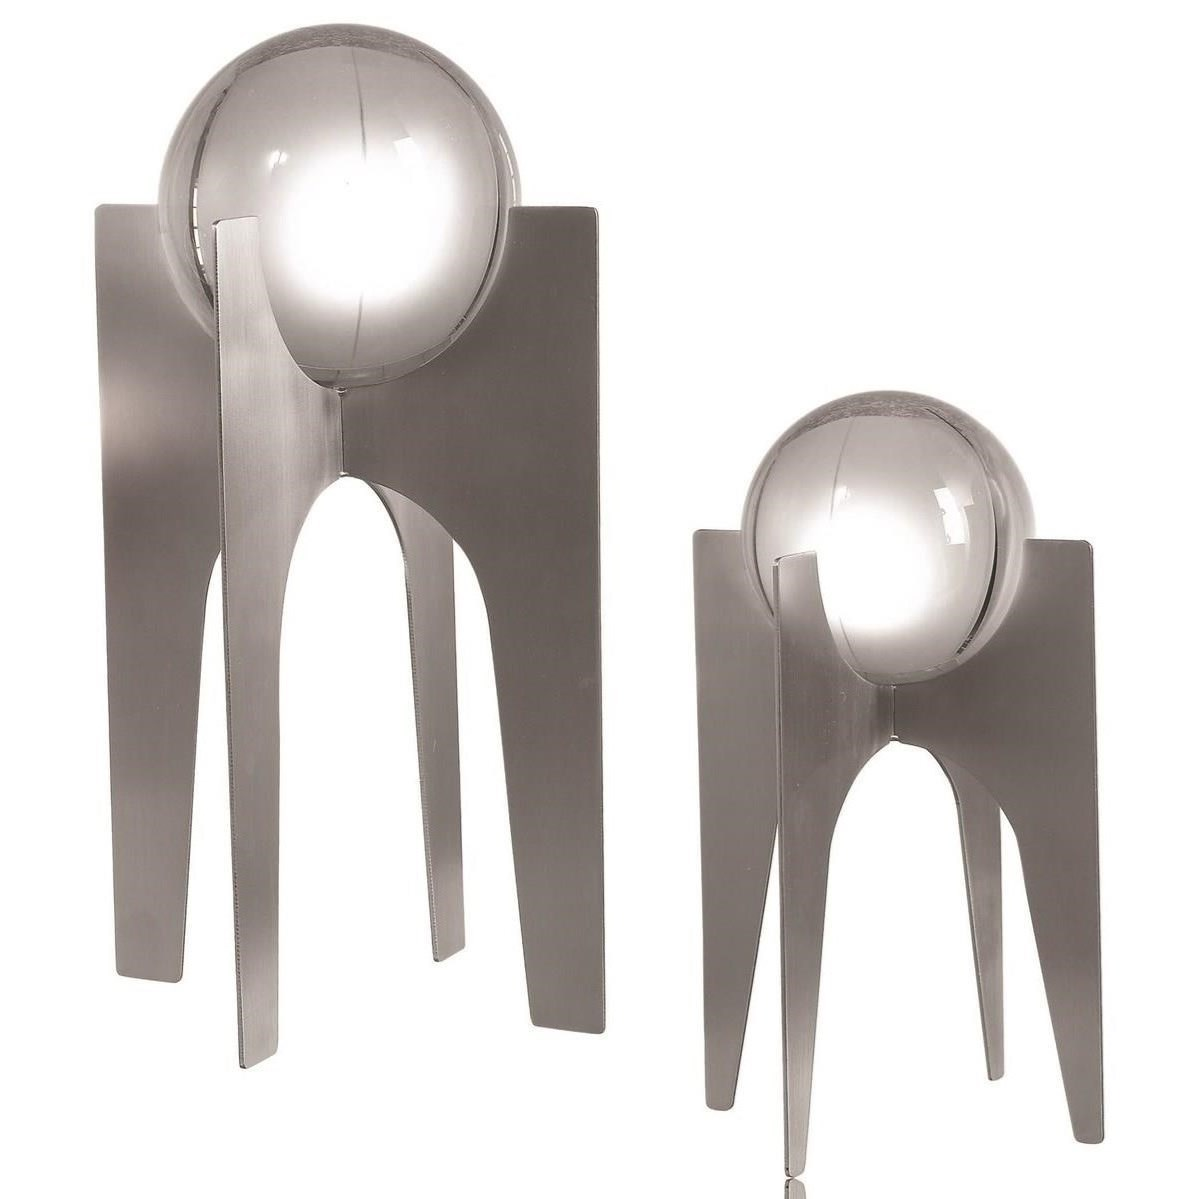 Accessories - Statues and Figurines Ellianna Silver Sculpture, Set/2 by Uttermost at Mueller Furniture